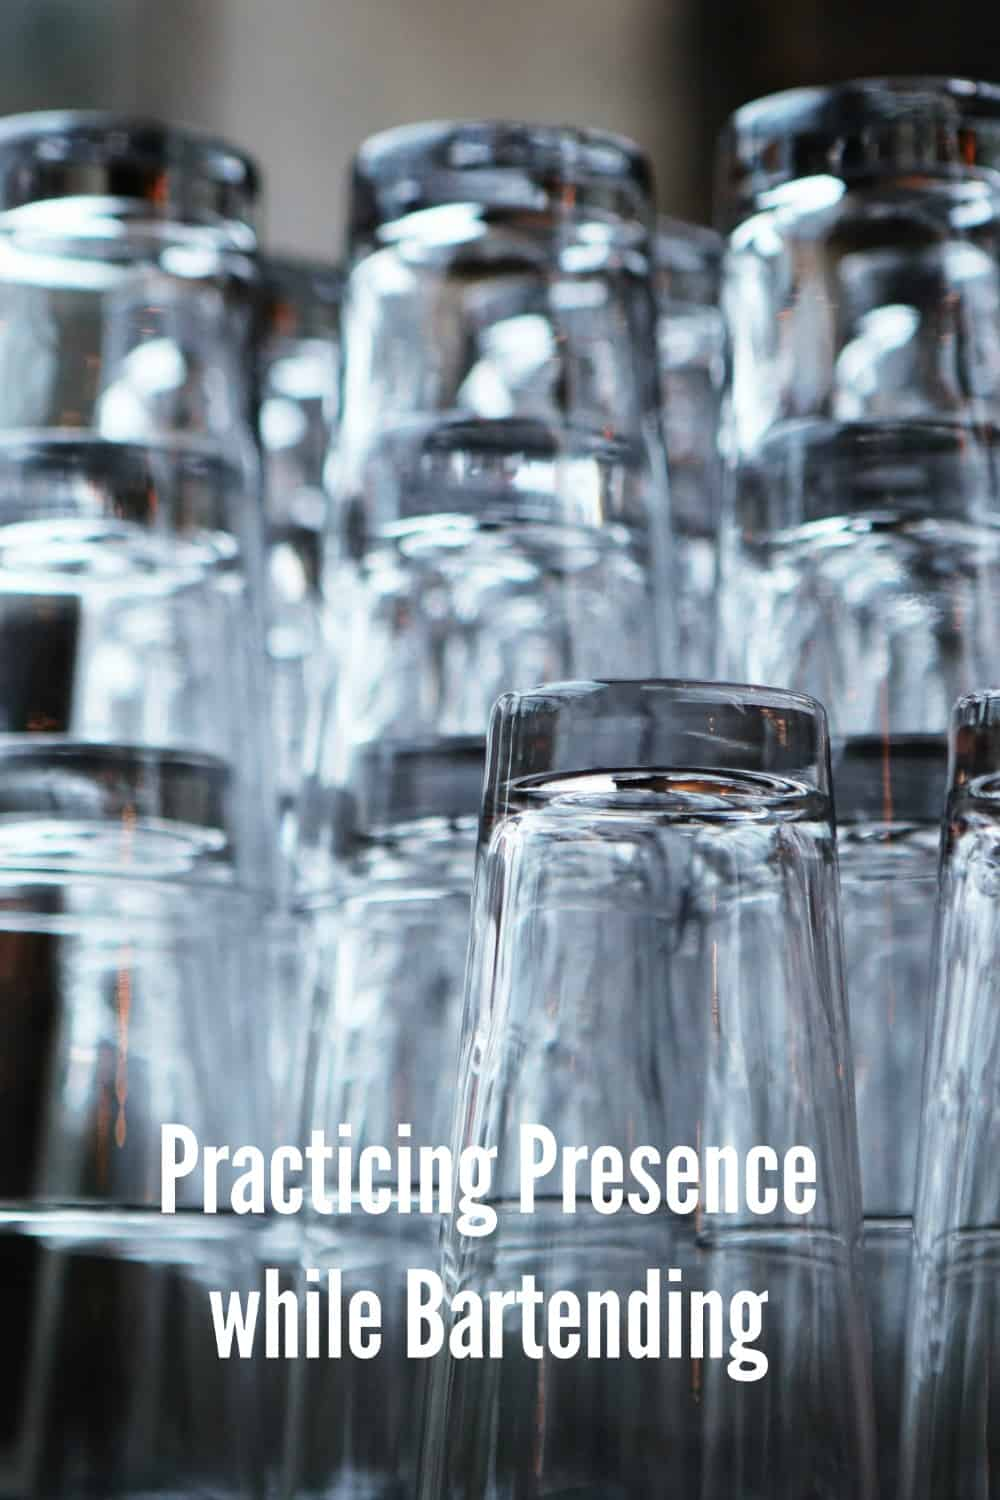 PI - Practicing Presence